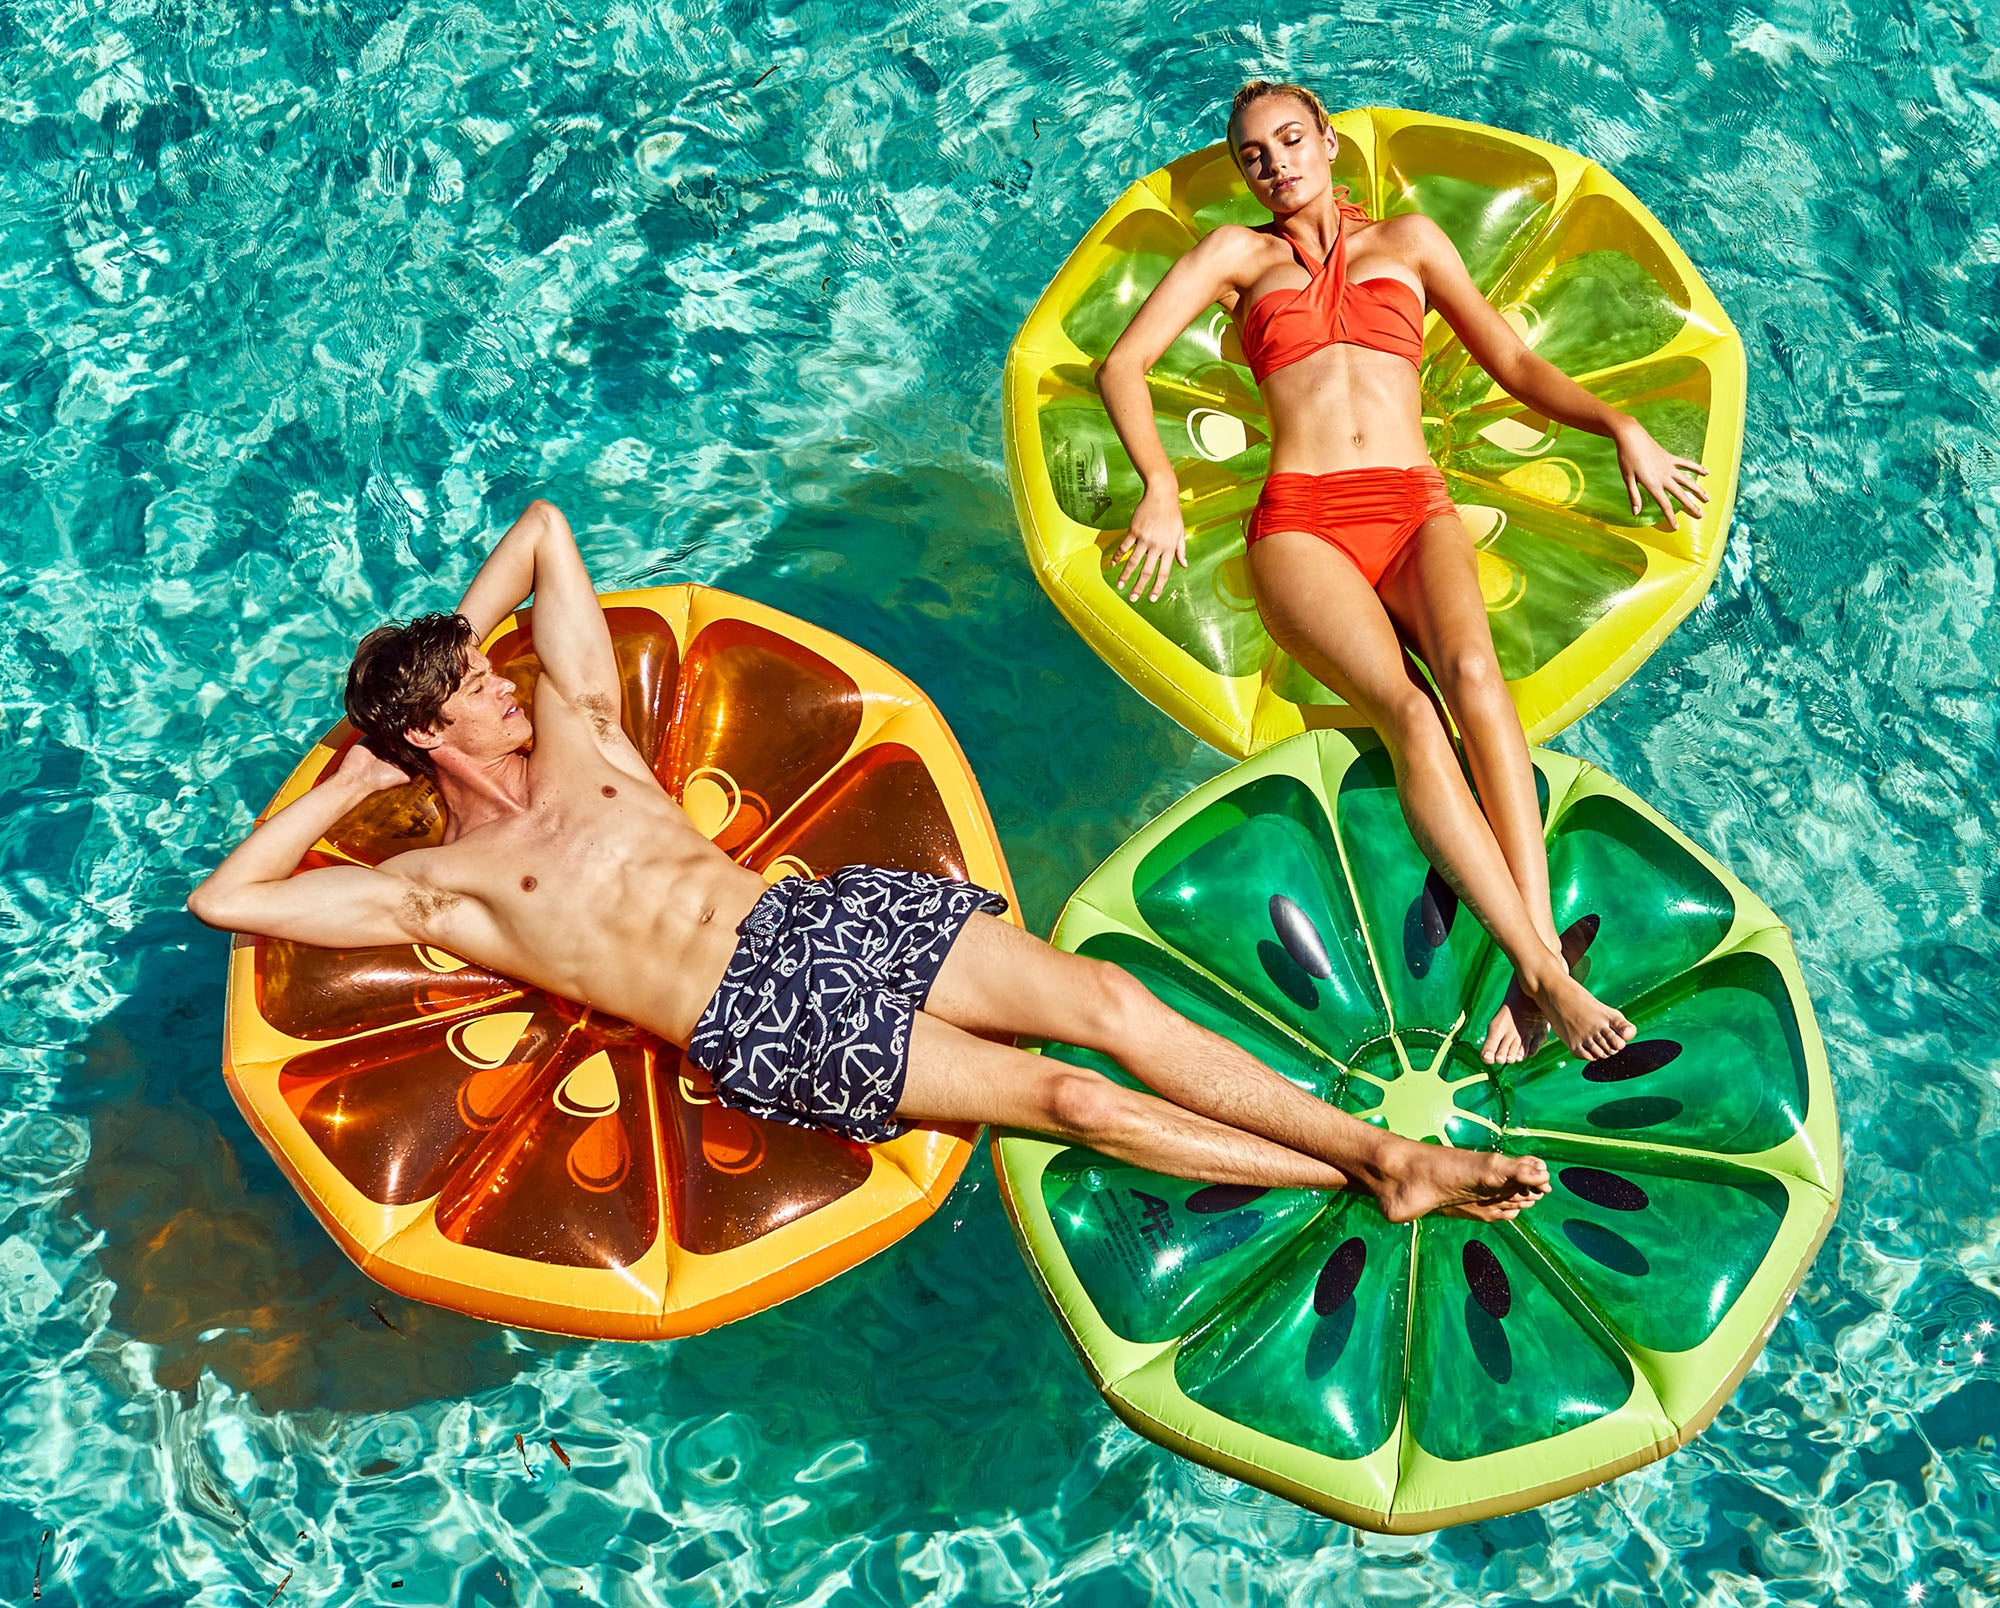 Lemon Circle Pool Float - Chachi's Bay - kids rashies - kids swimwear - kids swim shoes - round towels - beach towels